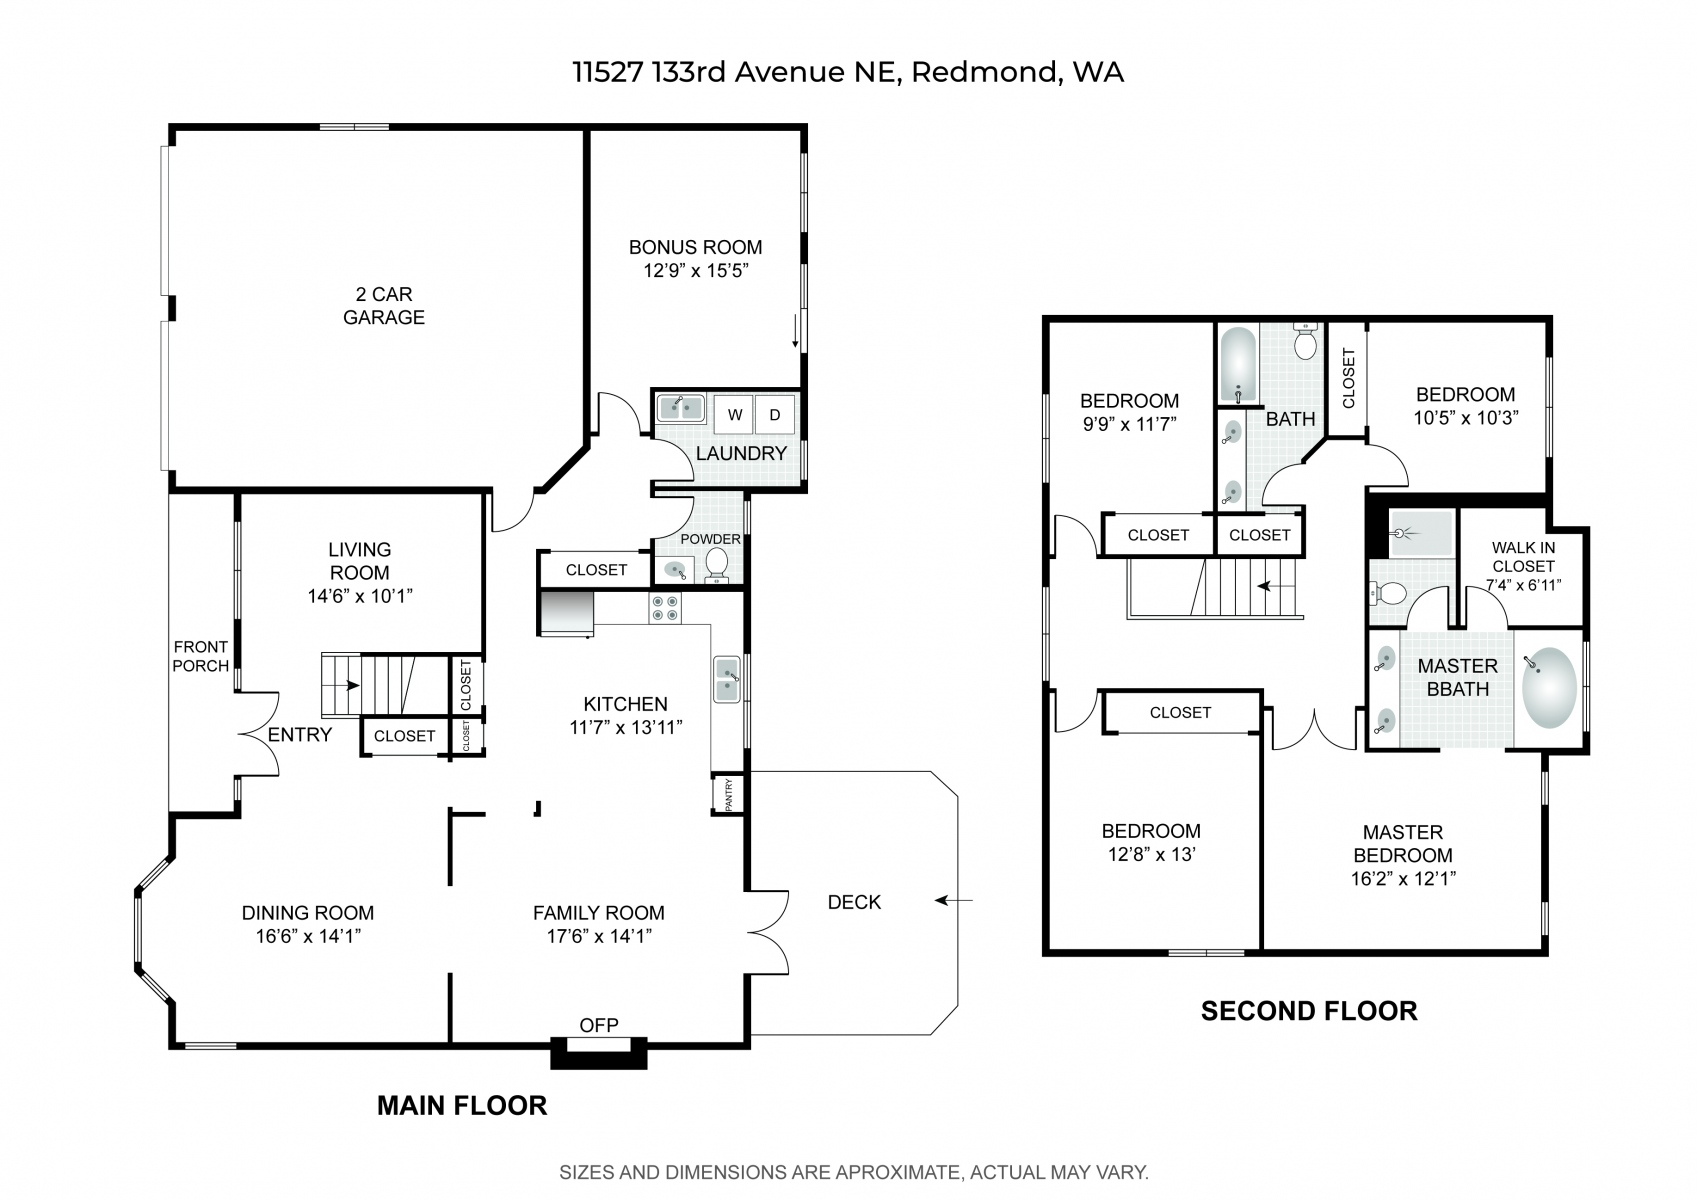 11527-133rd-Ave-NE-Redmond-Floorplan